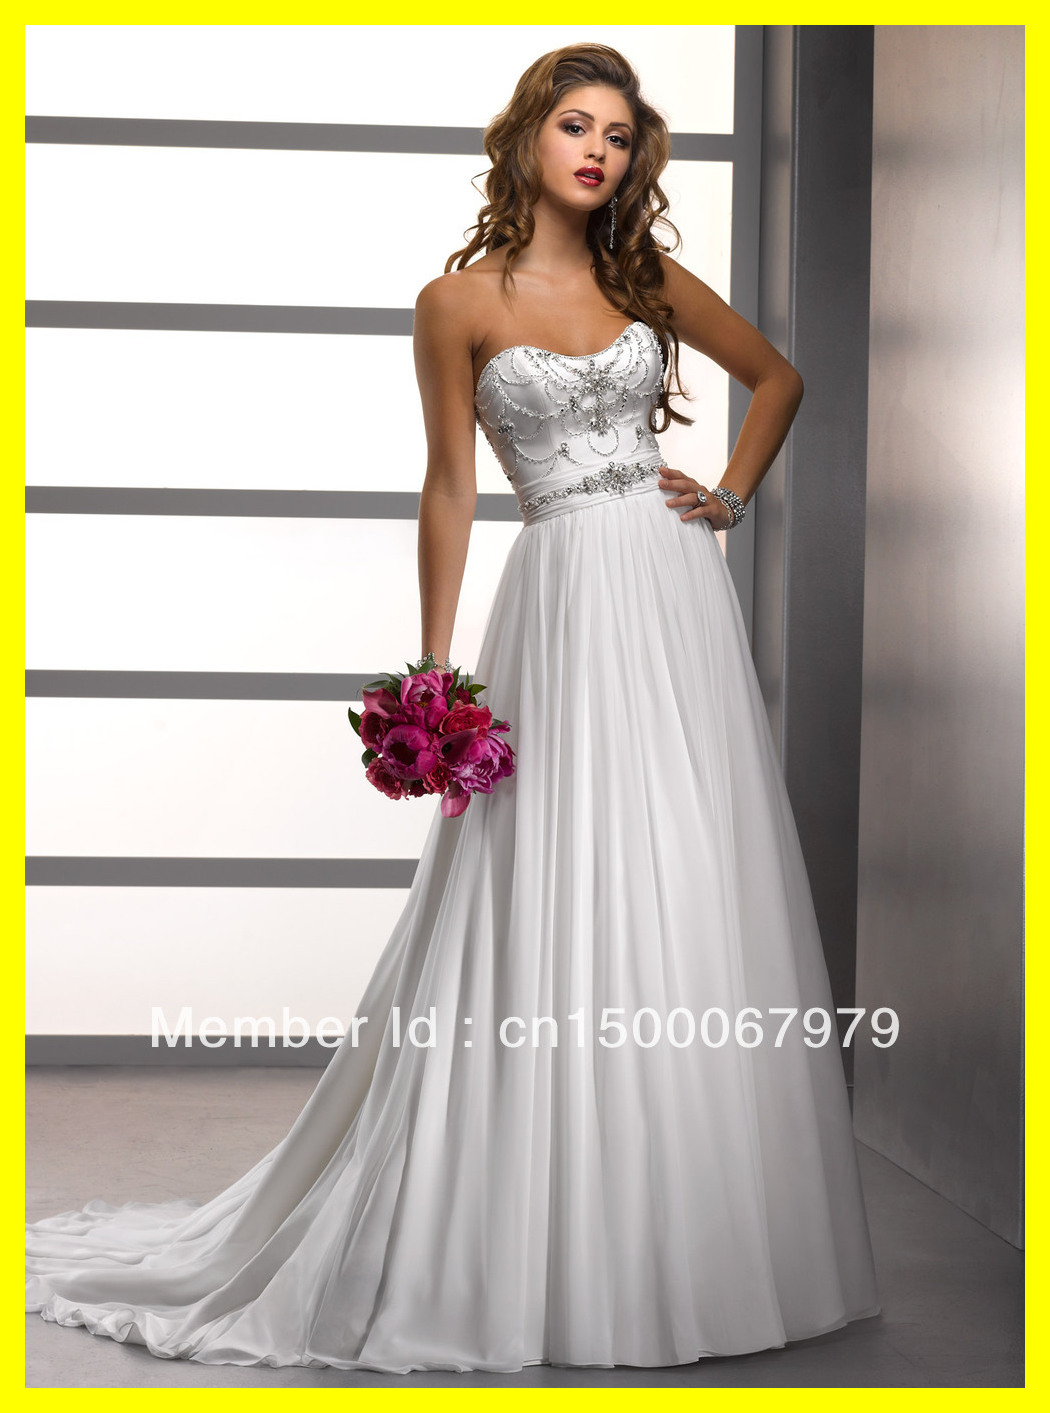 silver wedding dress colours silver wedding dresses siler bridesmaid dresses silver wedding dresses ladies silver special occasion dresses with